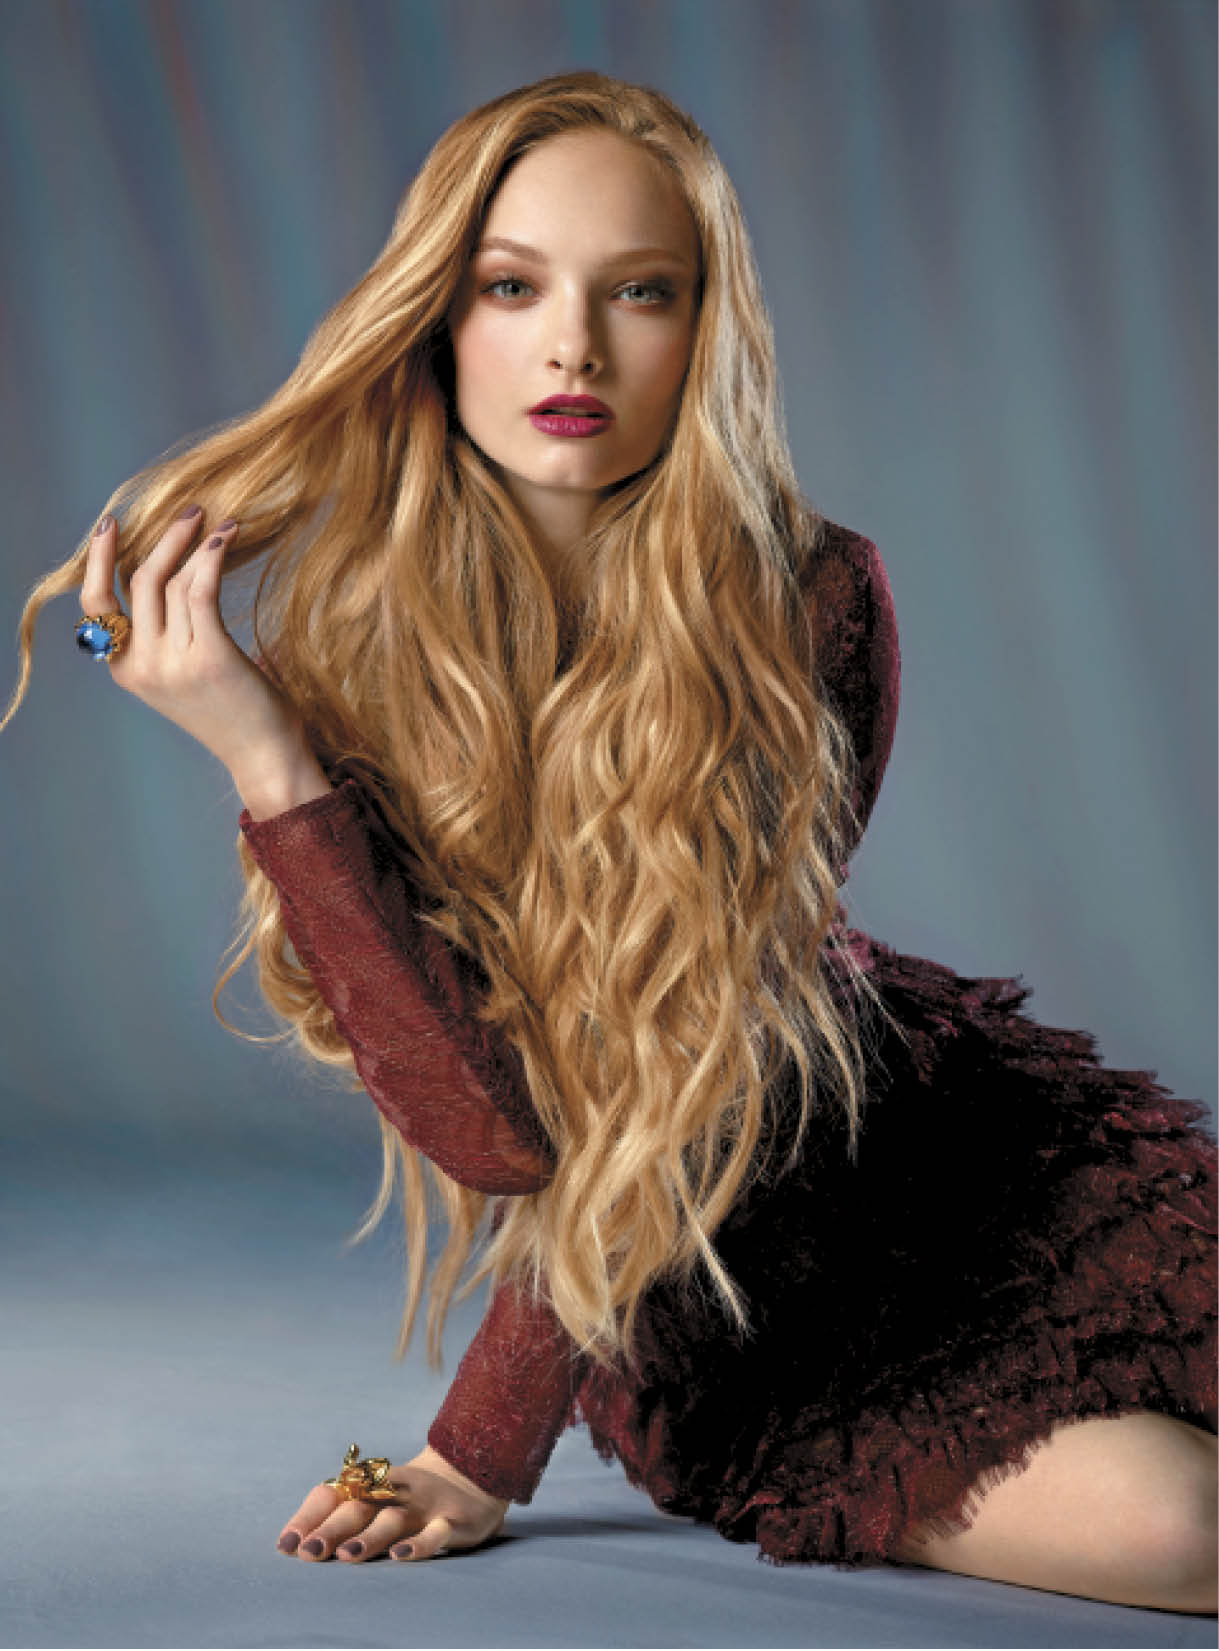 Quarles prepped the hair with the Obliphica Seaberry range before applying Seaberry Curl Cream and blow-drying locks to bring out natural texture. He wrapped small hair sections around a bi-tube iron and wrapped larger sections as he moved up the head for softer waves, finishing with the largest sections at the crown.  Dress: Tadashi Shoji;  Rings: MCL